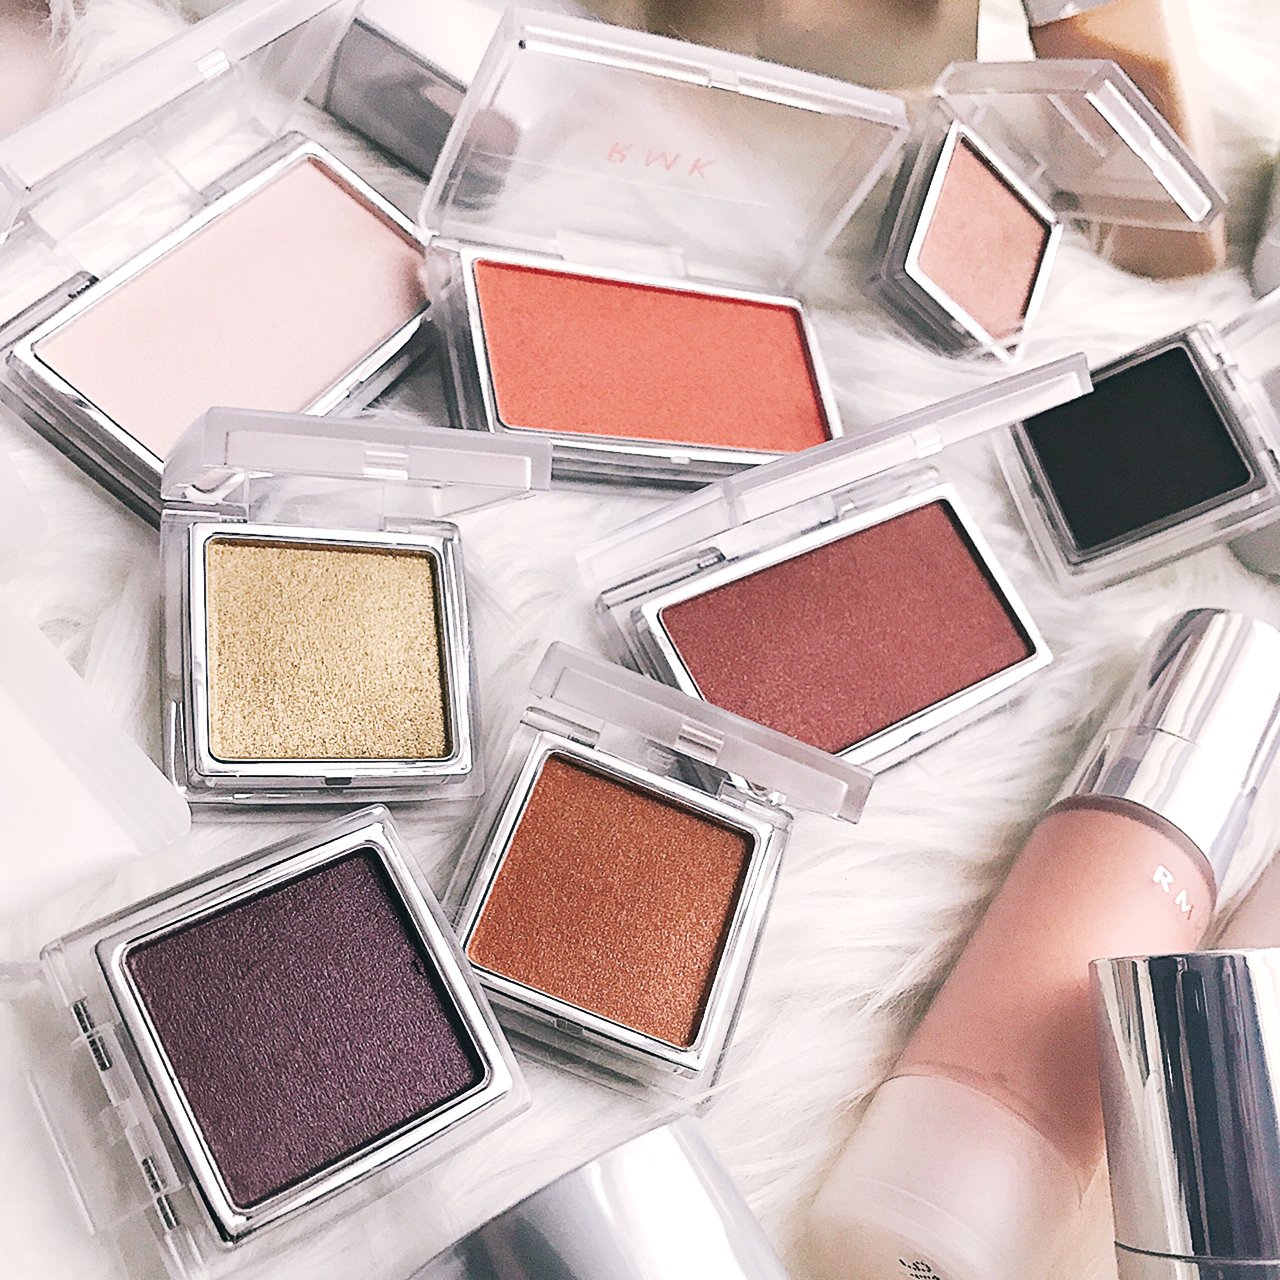 RMK 20th Anniversary Color Collection